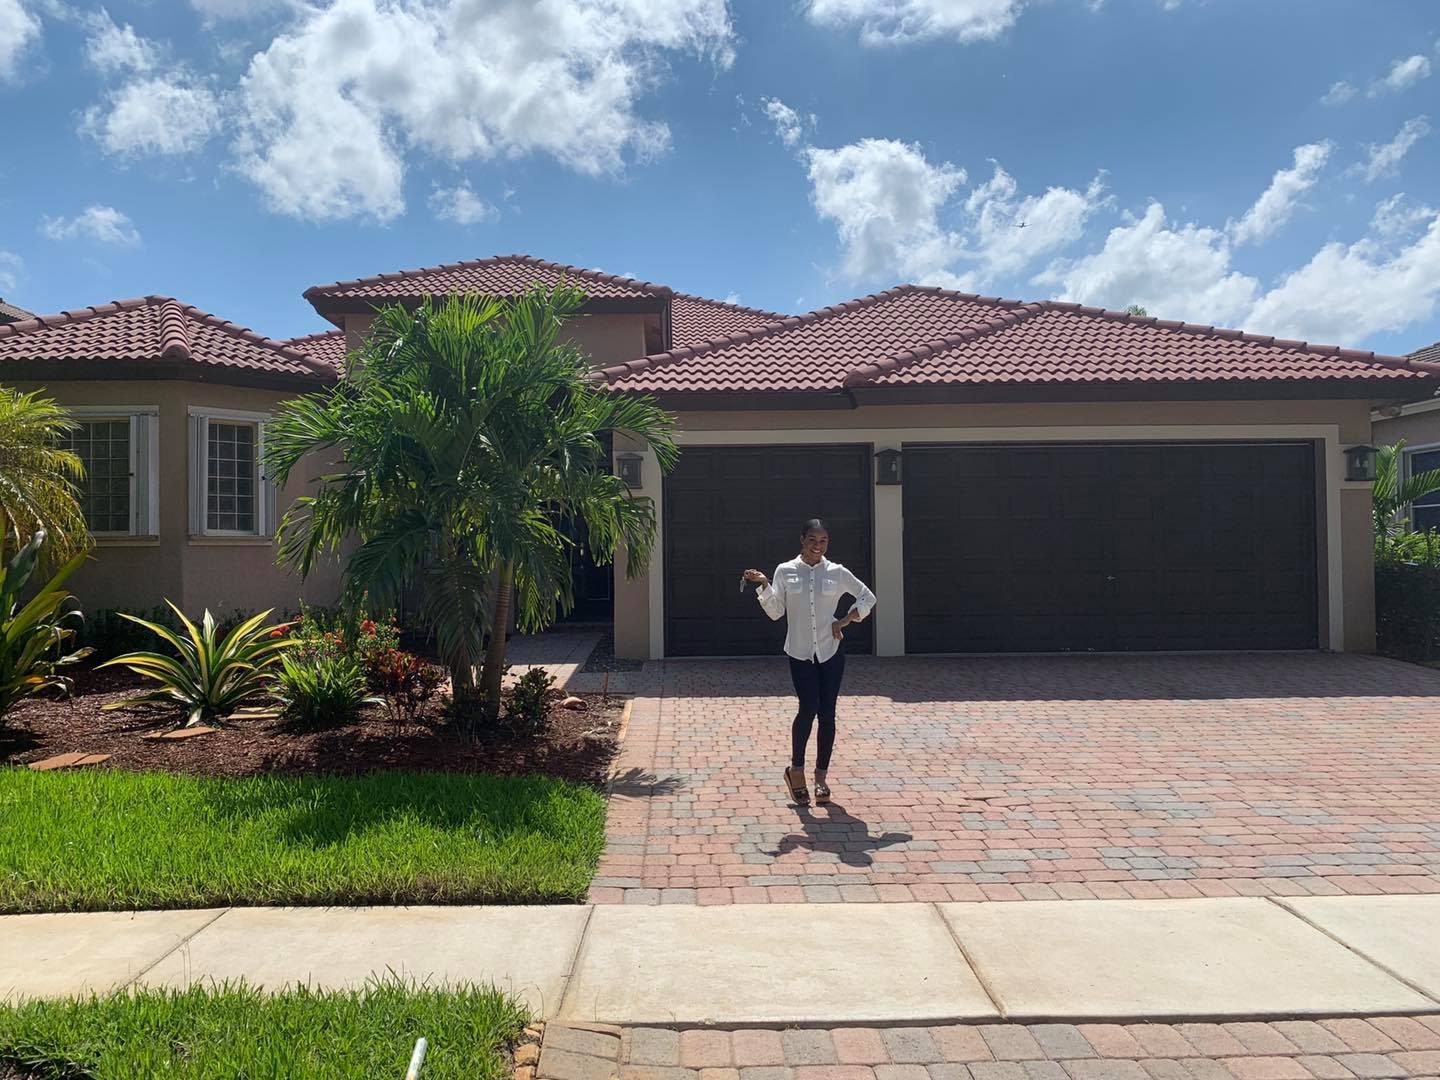 Briana Williams in front of her new home in Florida